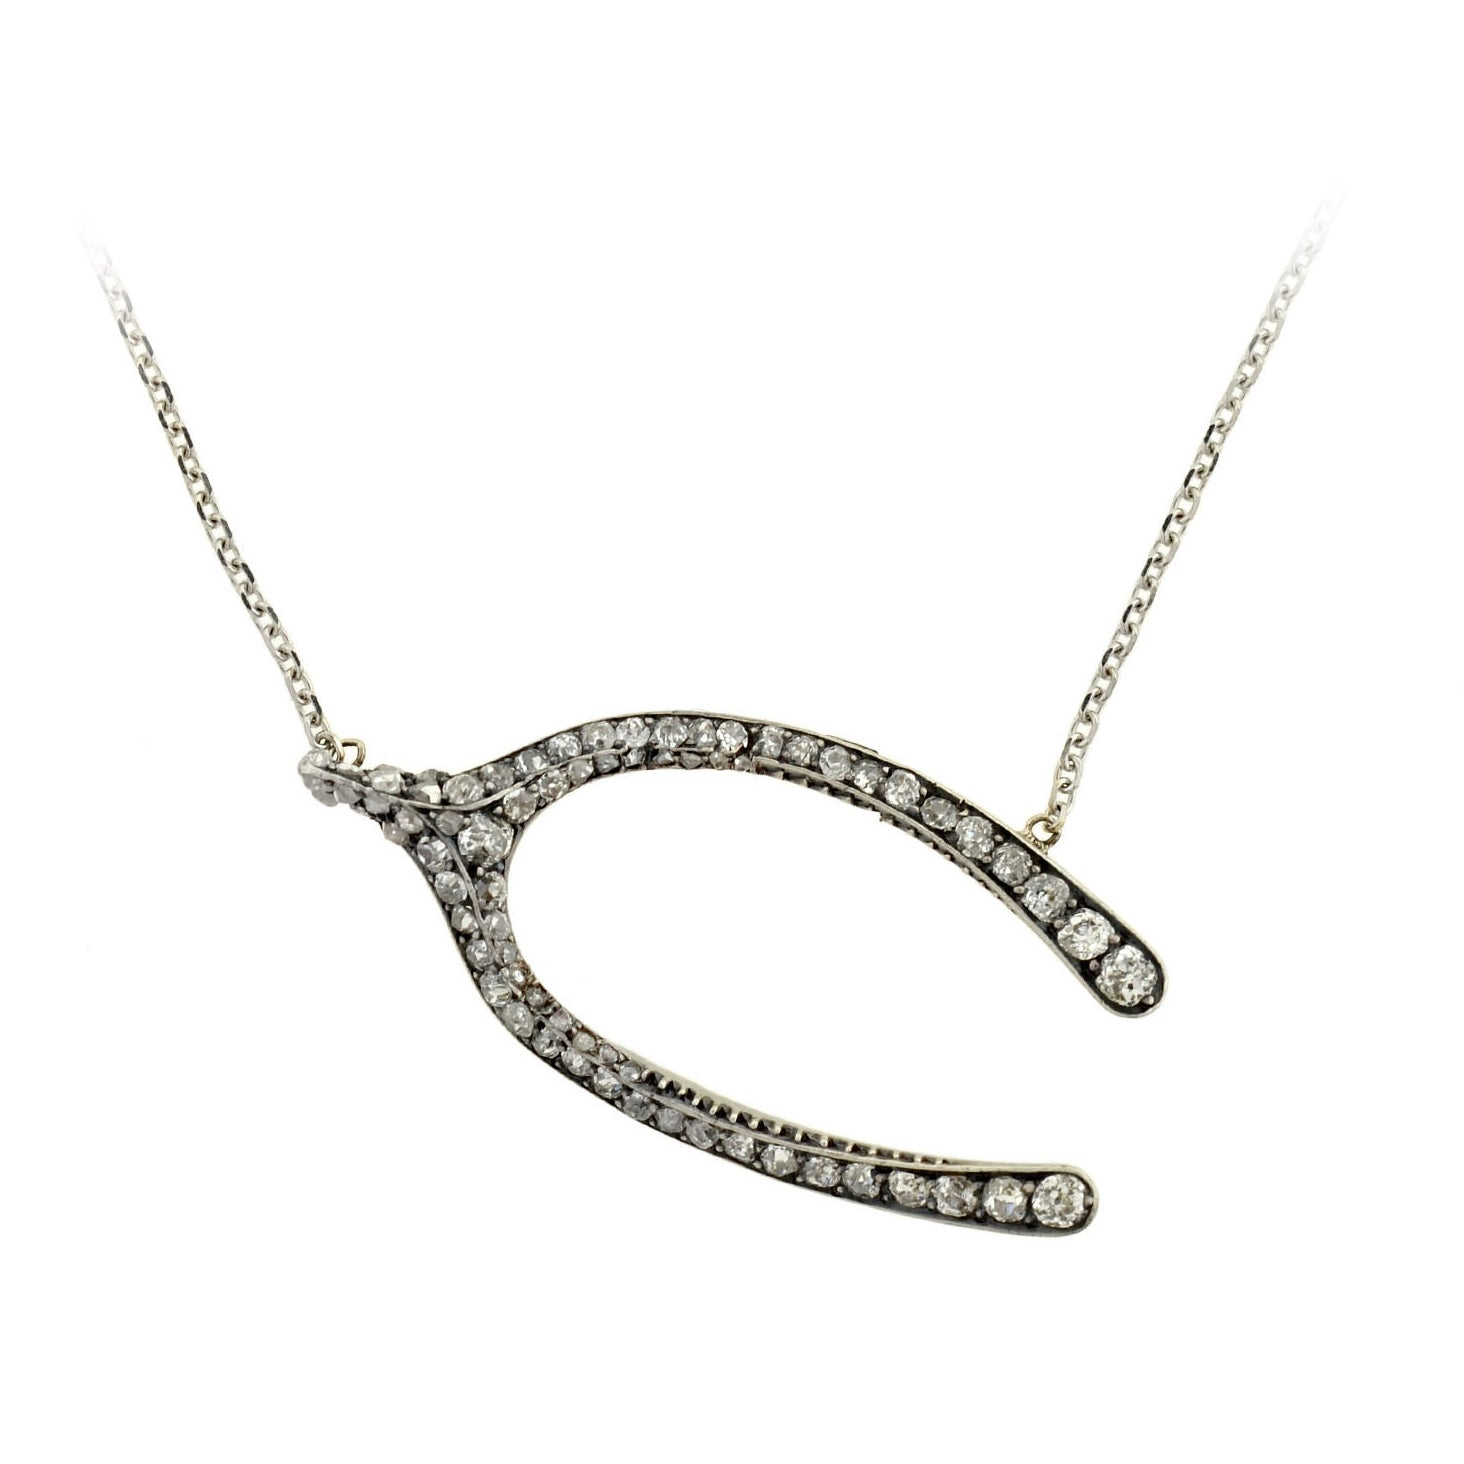 Victorian Silver Topped Diamond Wishbone Pendant Necklace Pertaining To 2020 Sparkling Wishbone Necklaces (Gallery 25 of 25)